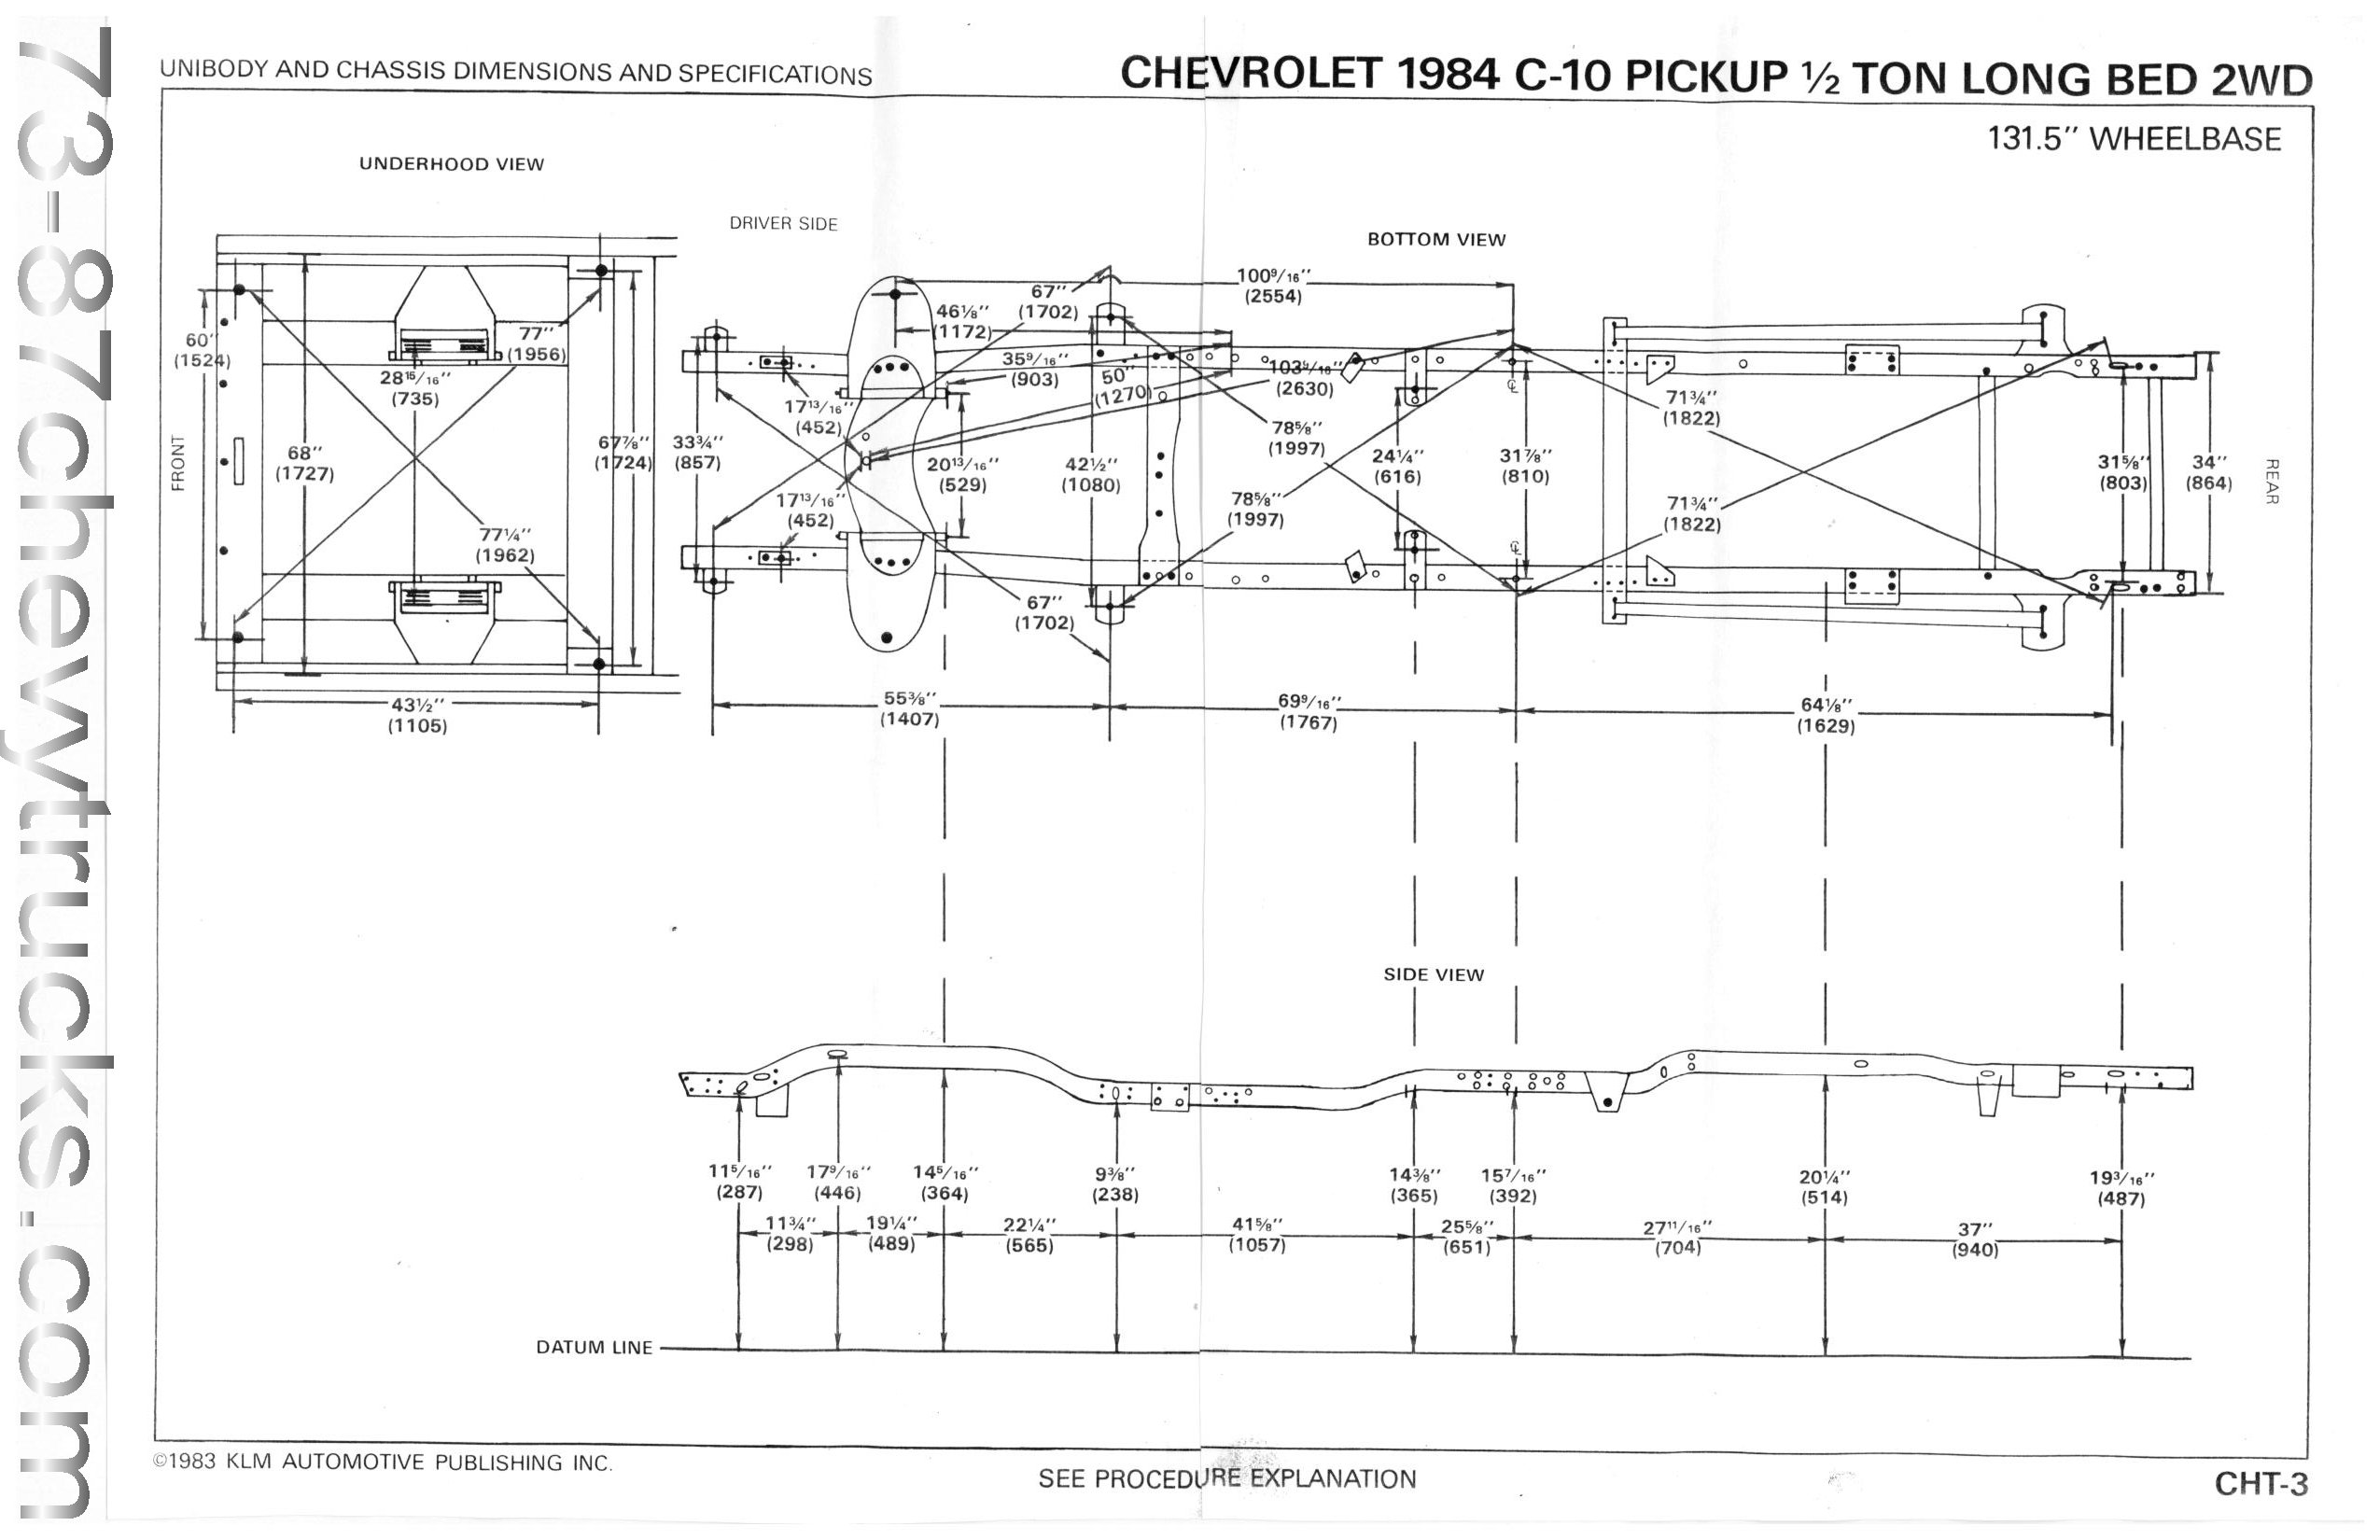 Tbi Wiring Diagram 1987 Chevy R10 Schematics Data Diagrams V20 87 Get Free Image About Ignition